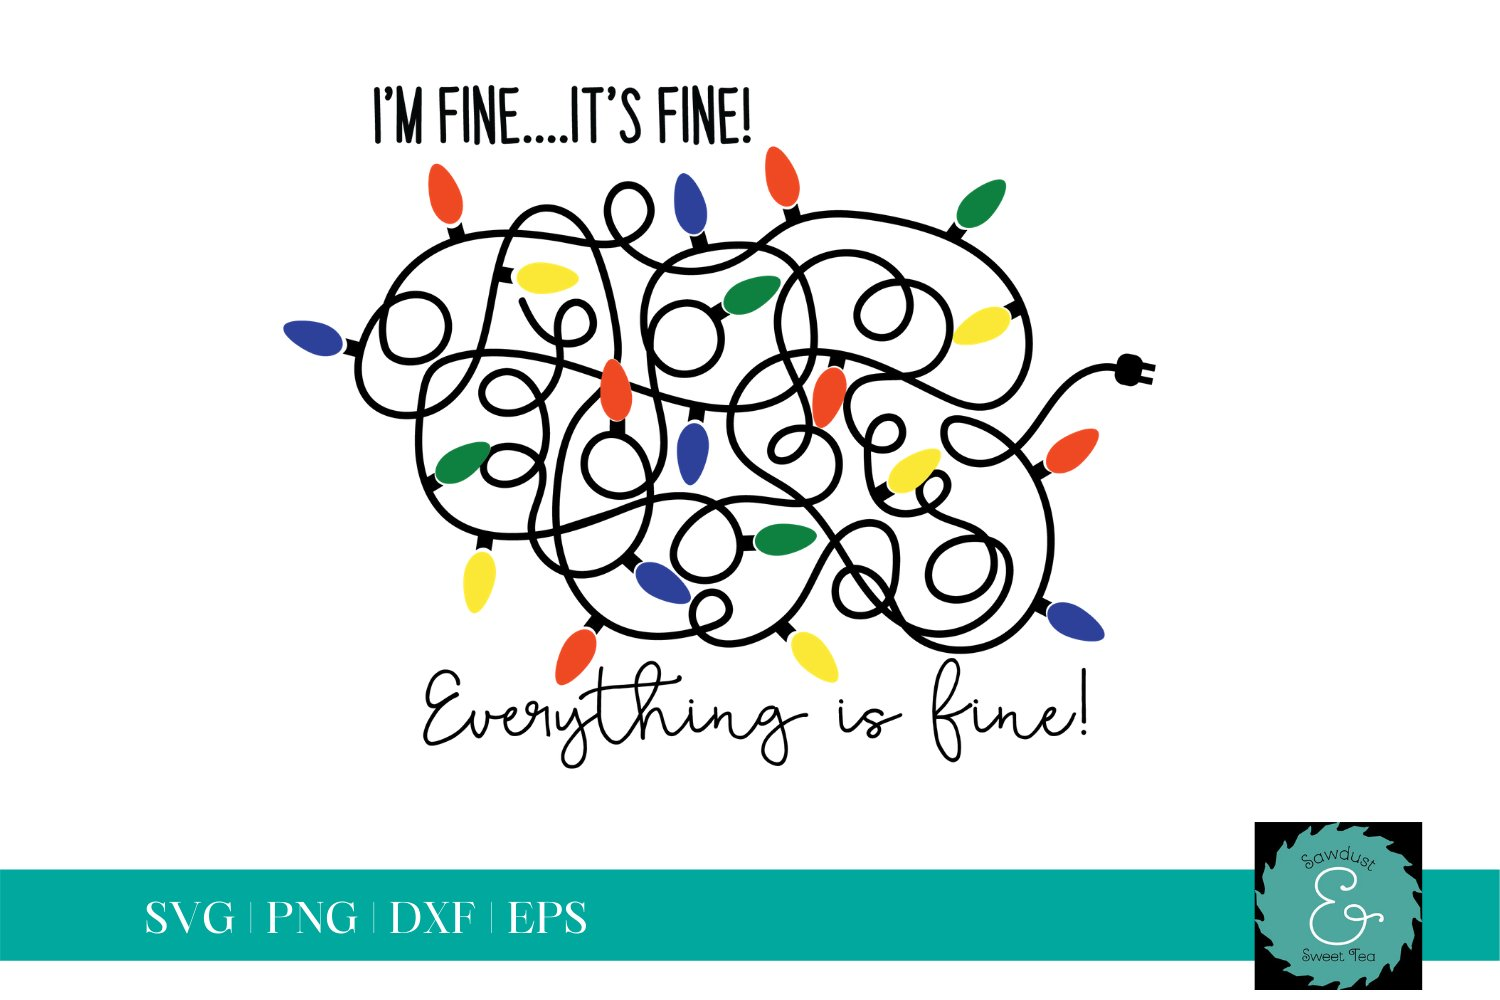 It S Fine Everything Is Fine Svg Tangled Lights Svg 949563 Cut Files Design Bundles